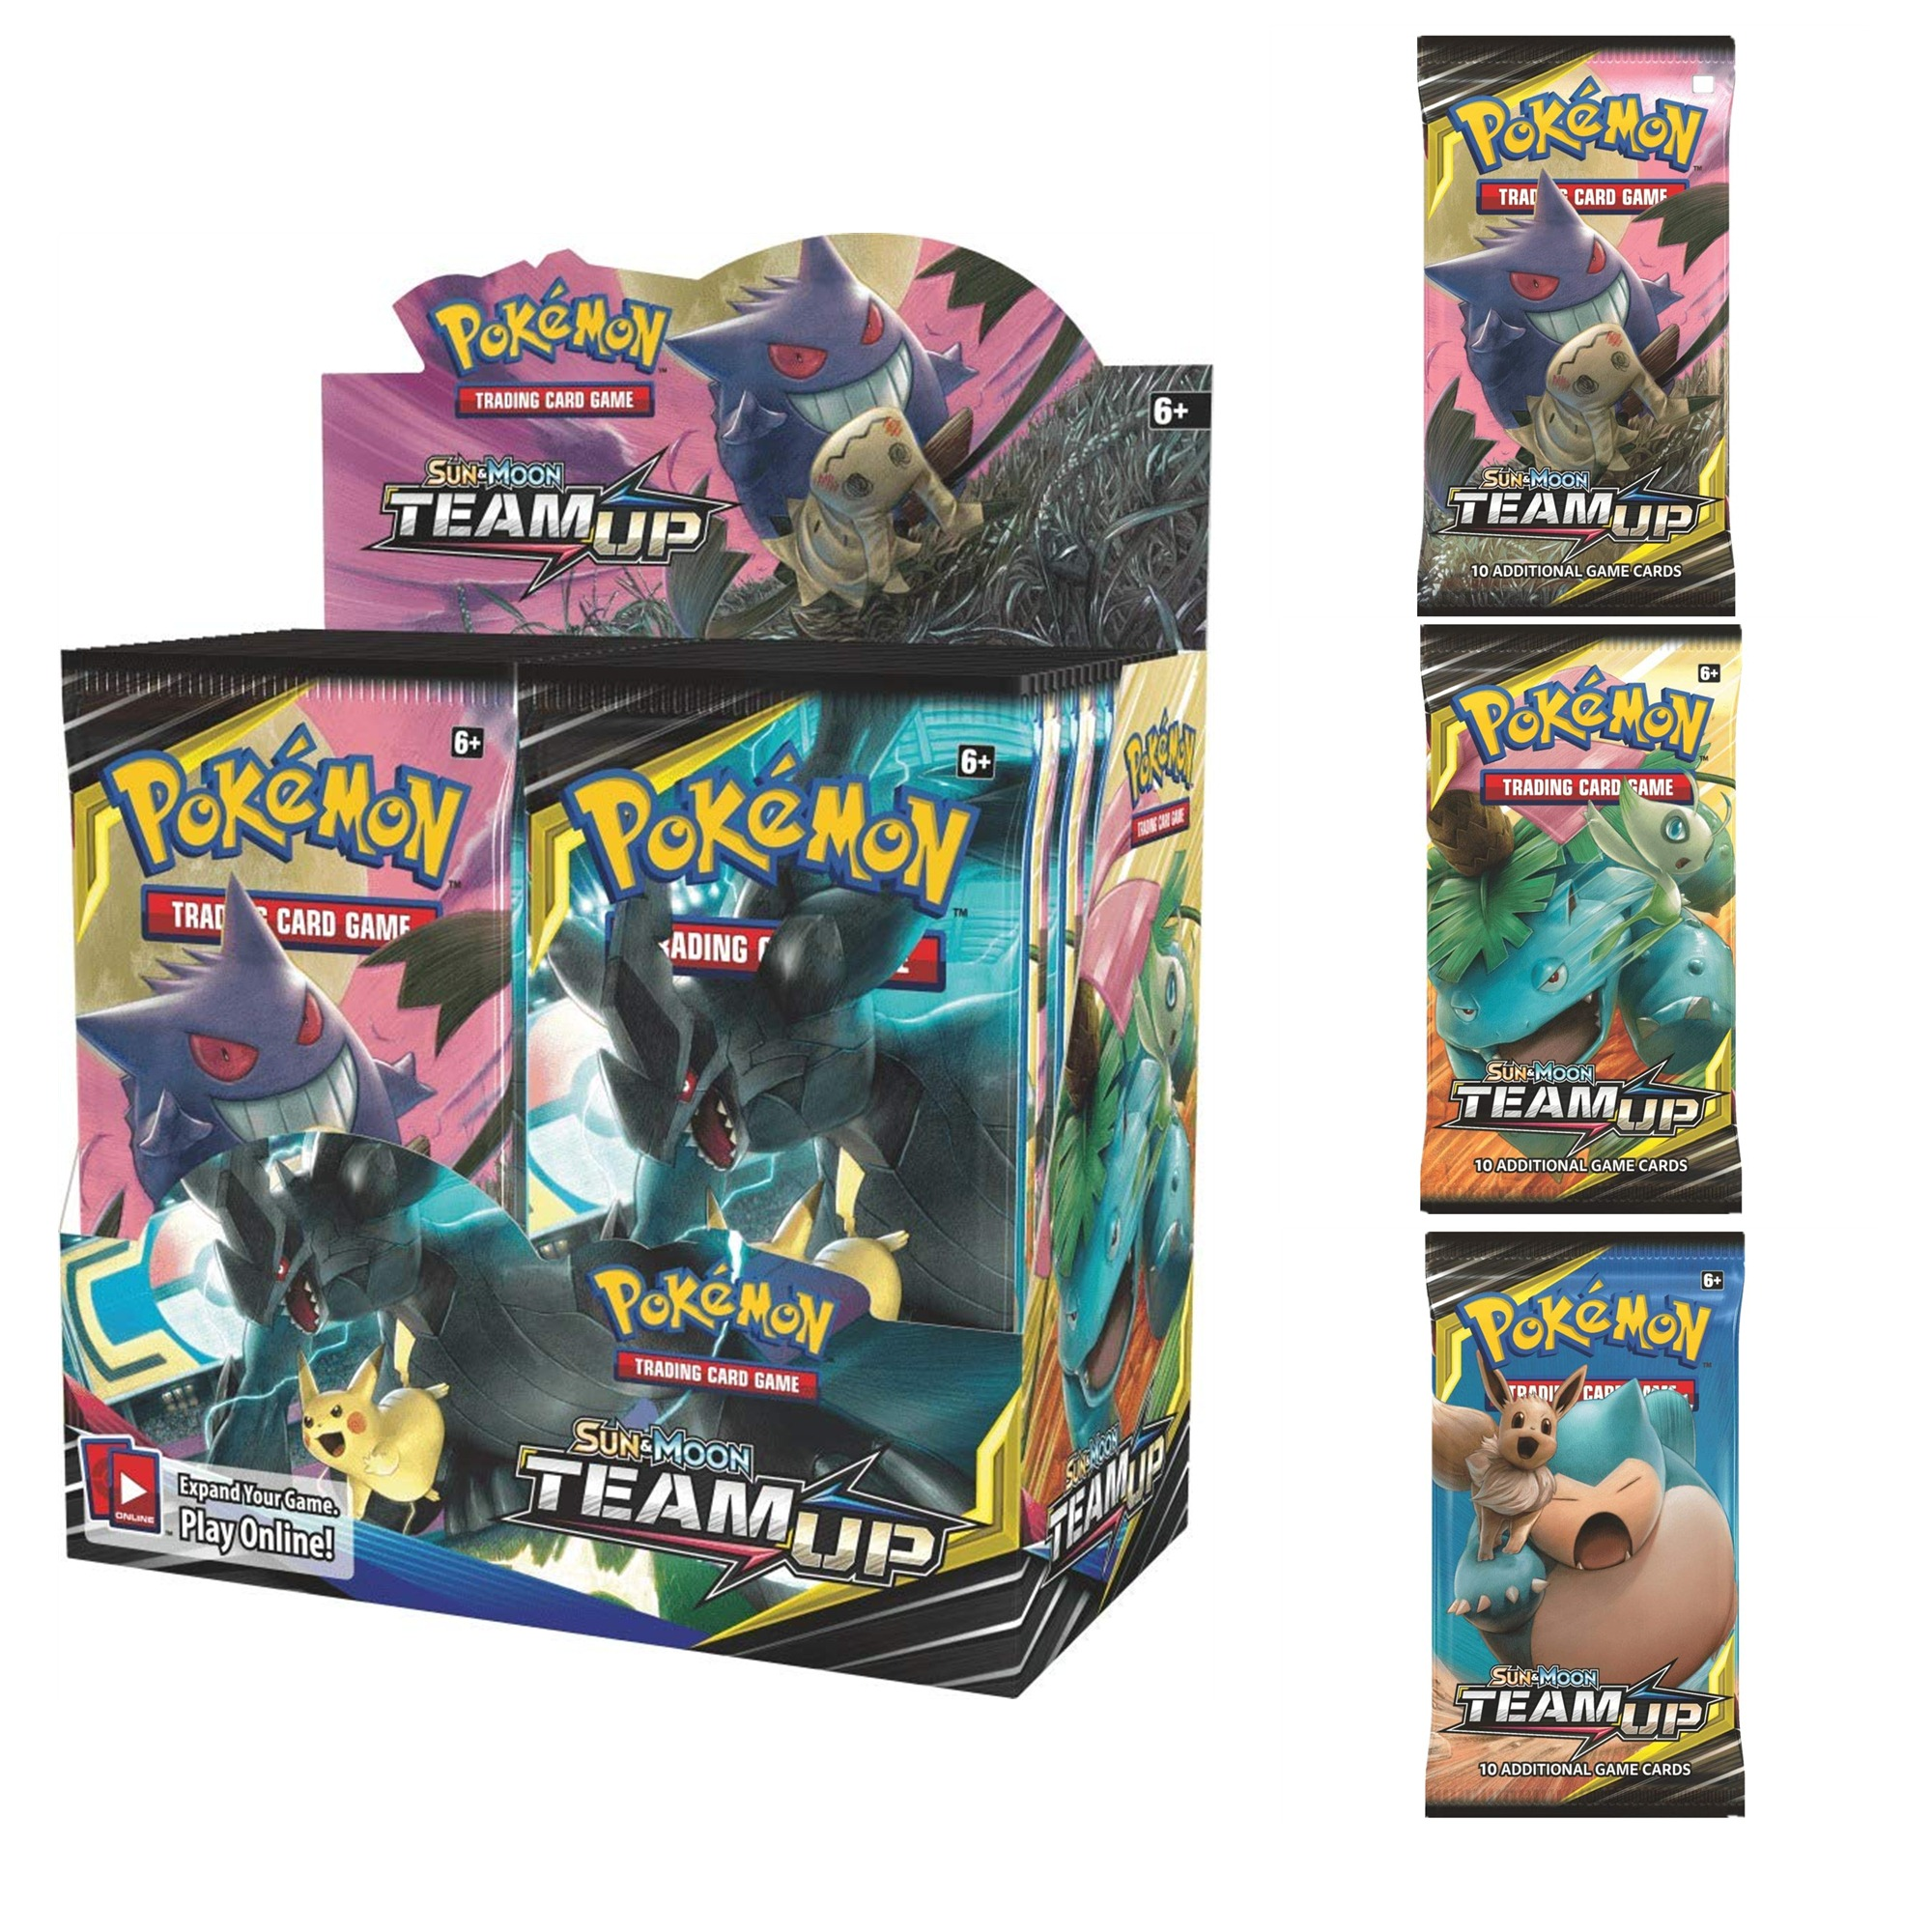 324 Cards Pokemon TCG: Sun & Moon Team Up Collectible Trading Card Set High quality card Toy collection image